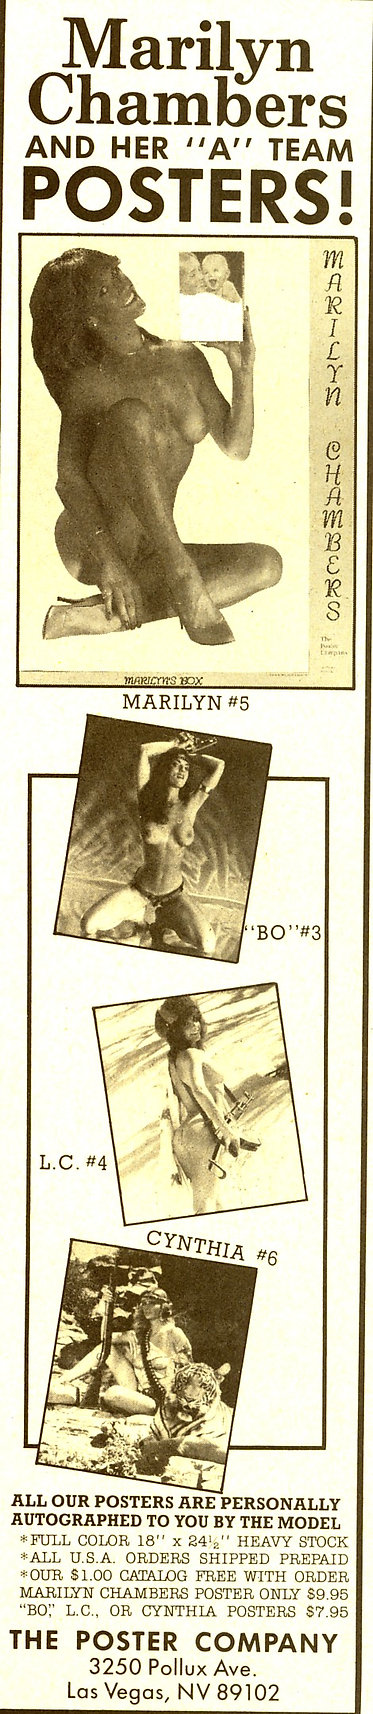 The Poster Company advertisement featuring a Marilyn Chambers poster, ca. 1983